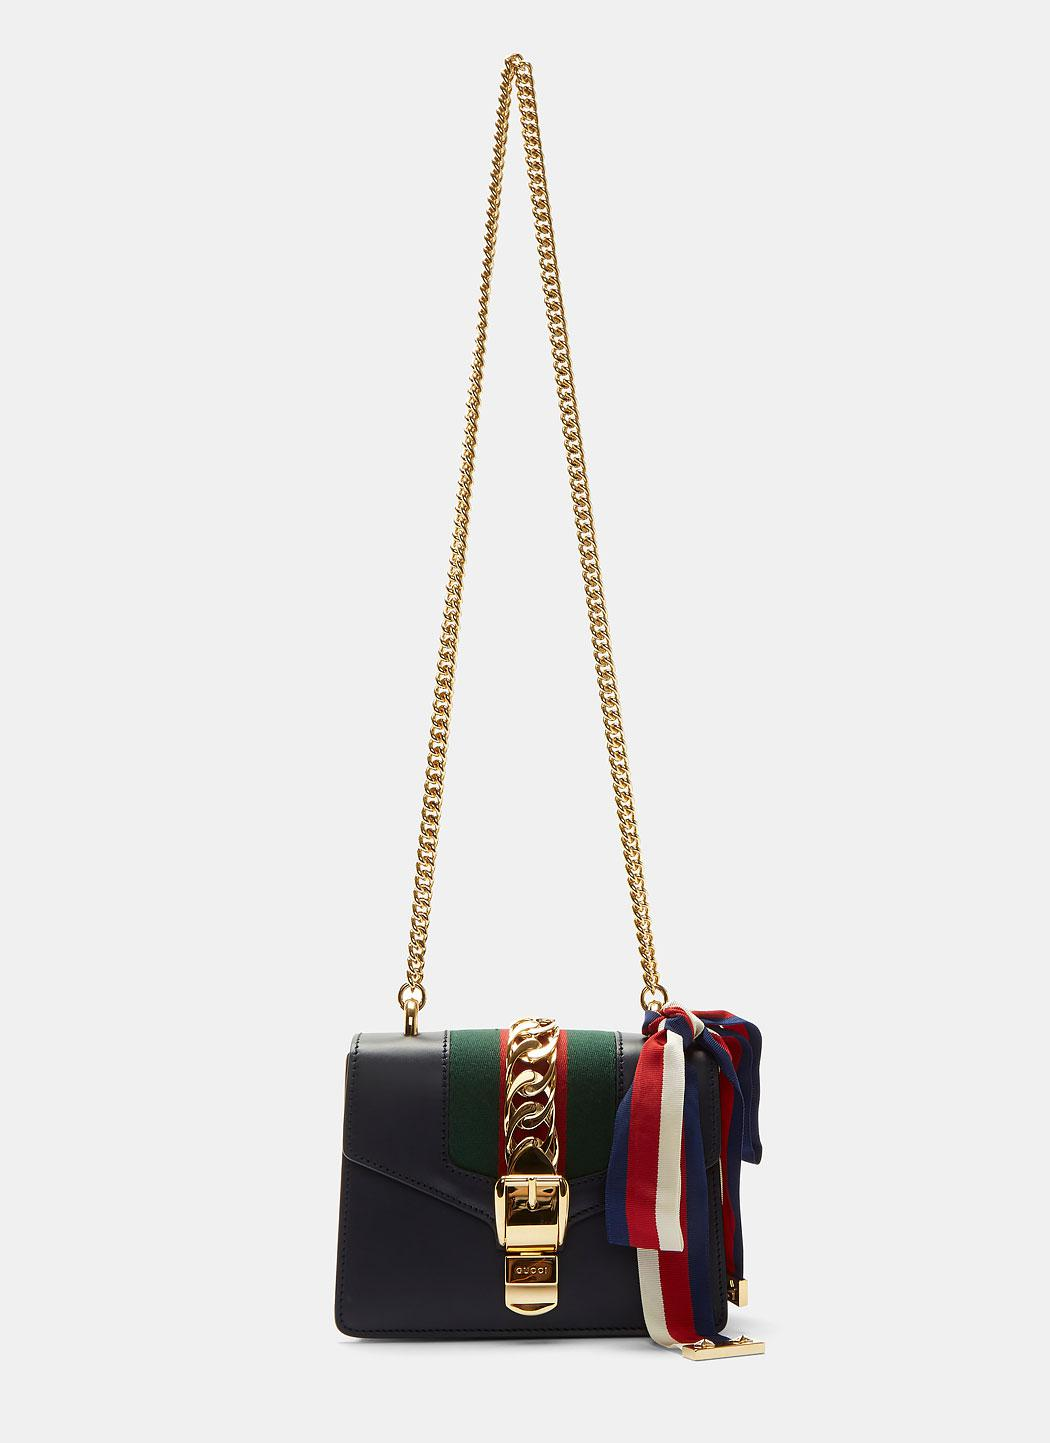 8f3fc6b5abce9f Gucci Sylvie Chain Mini Shoulder Bag In Navy in Blue - Lyst